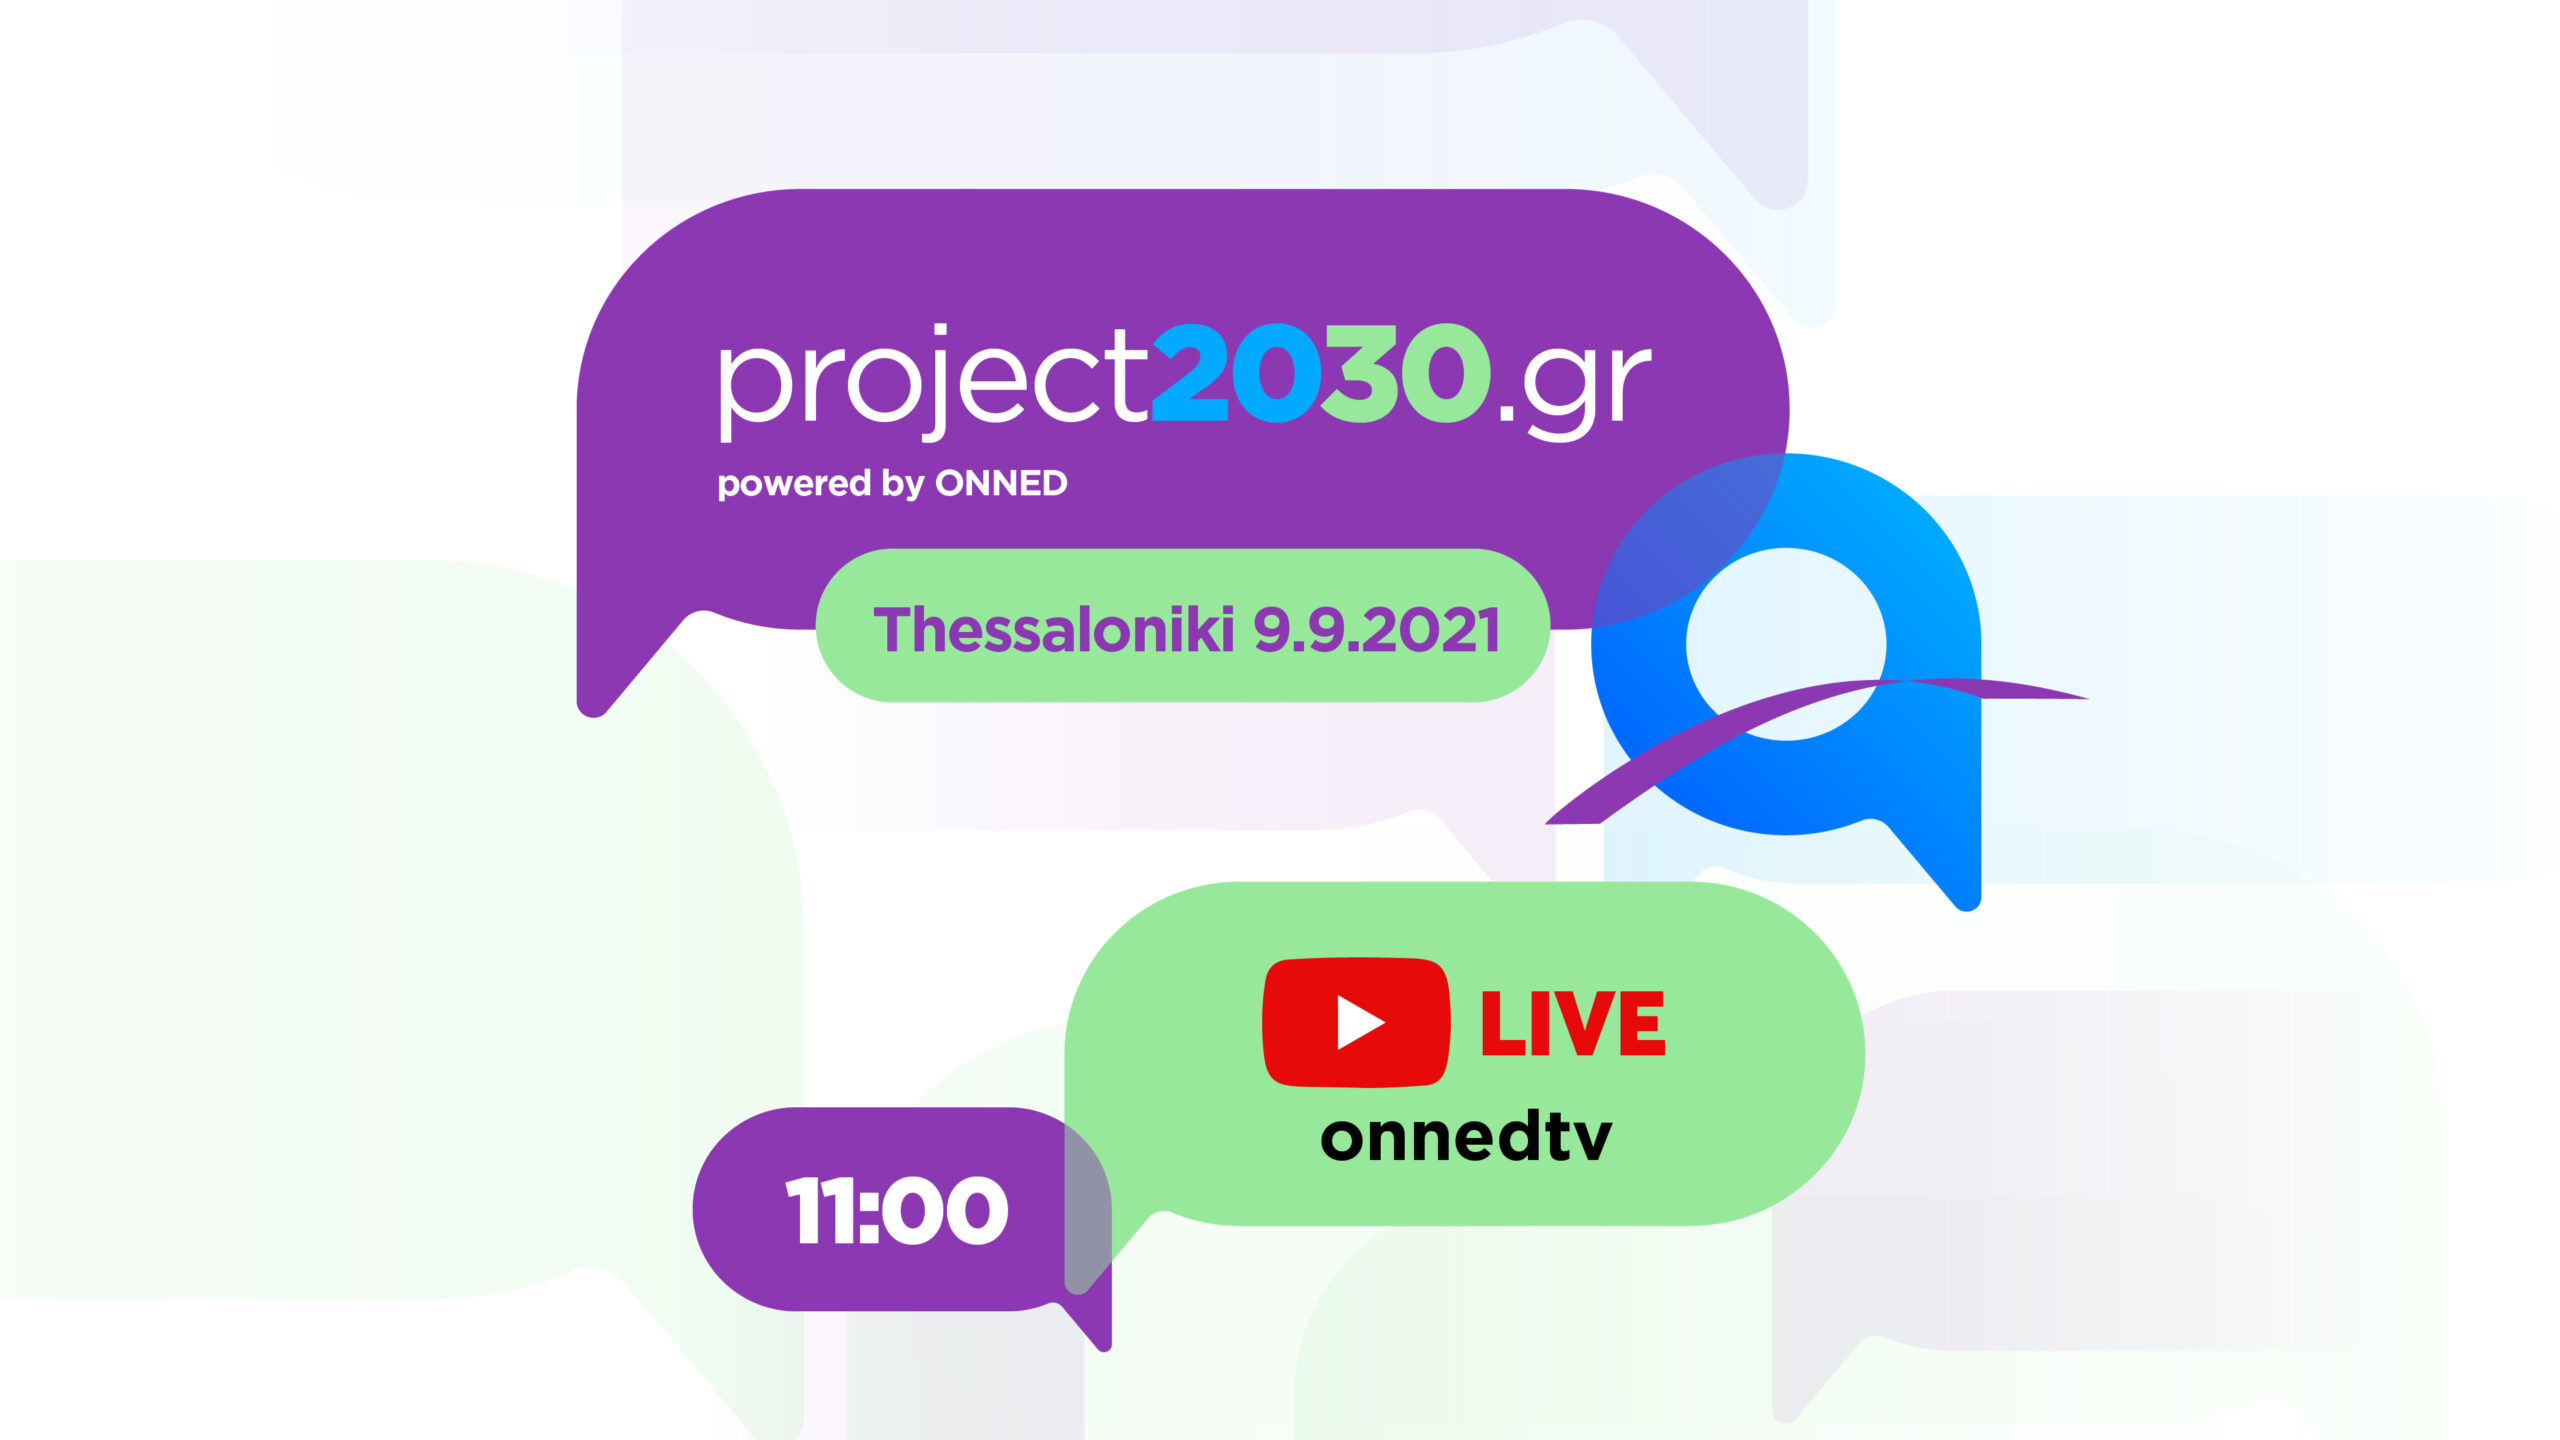 Project 2030.gr powered by ΟΝΝΕΔ